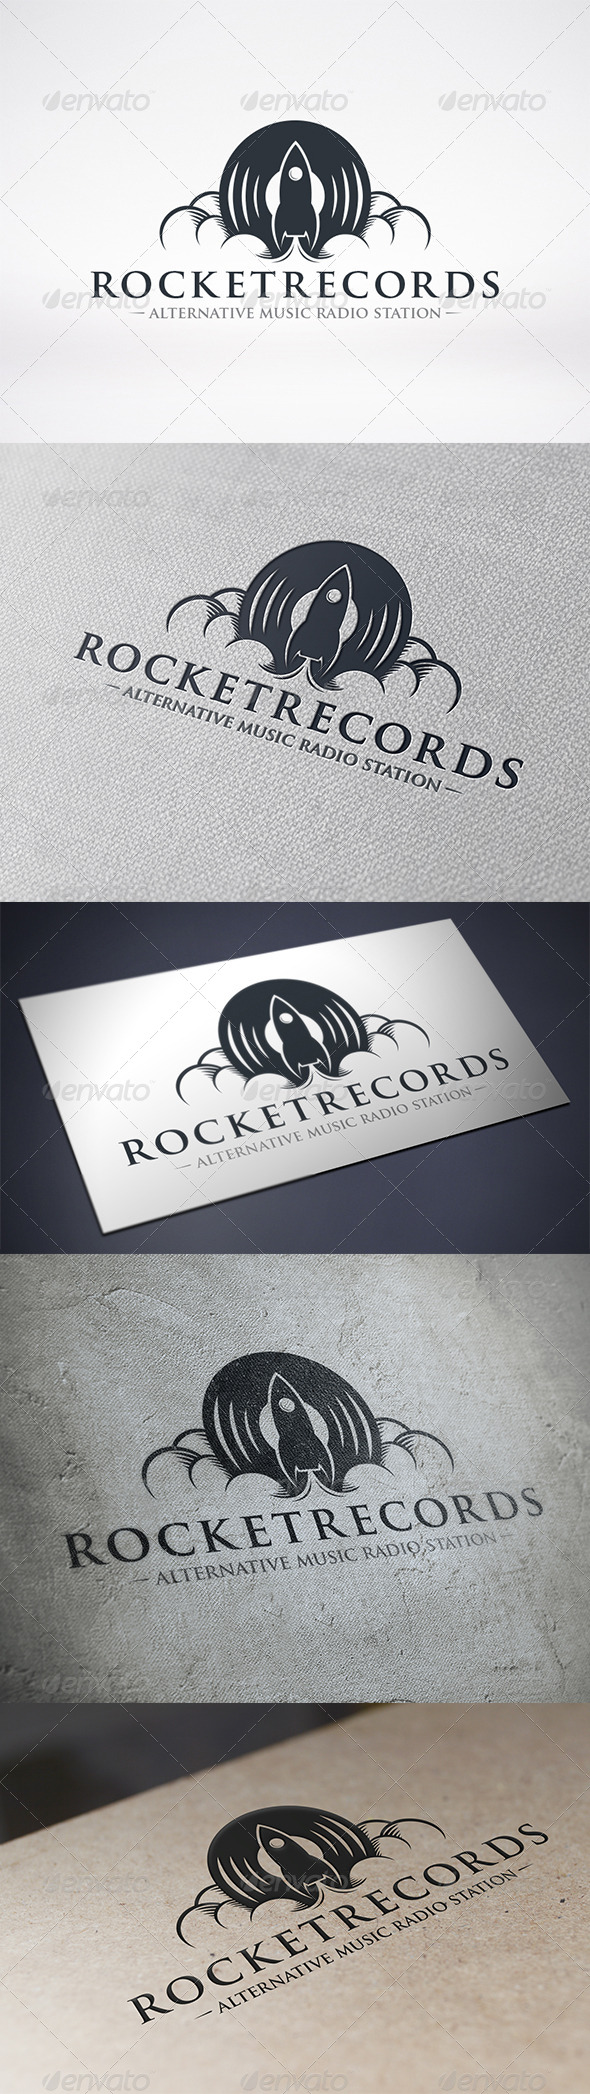 Rocket Records Logo Template - Objects Logo Templates